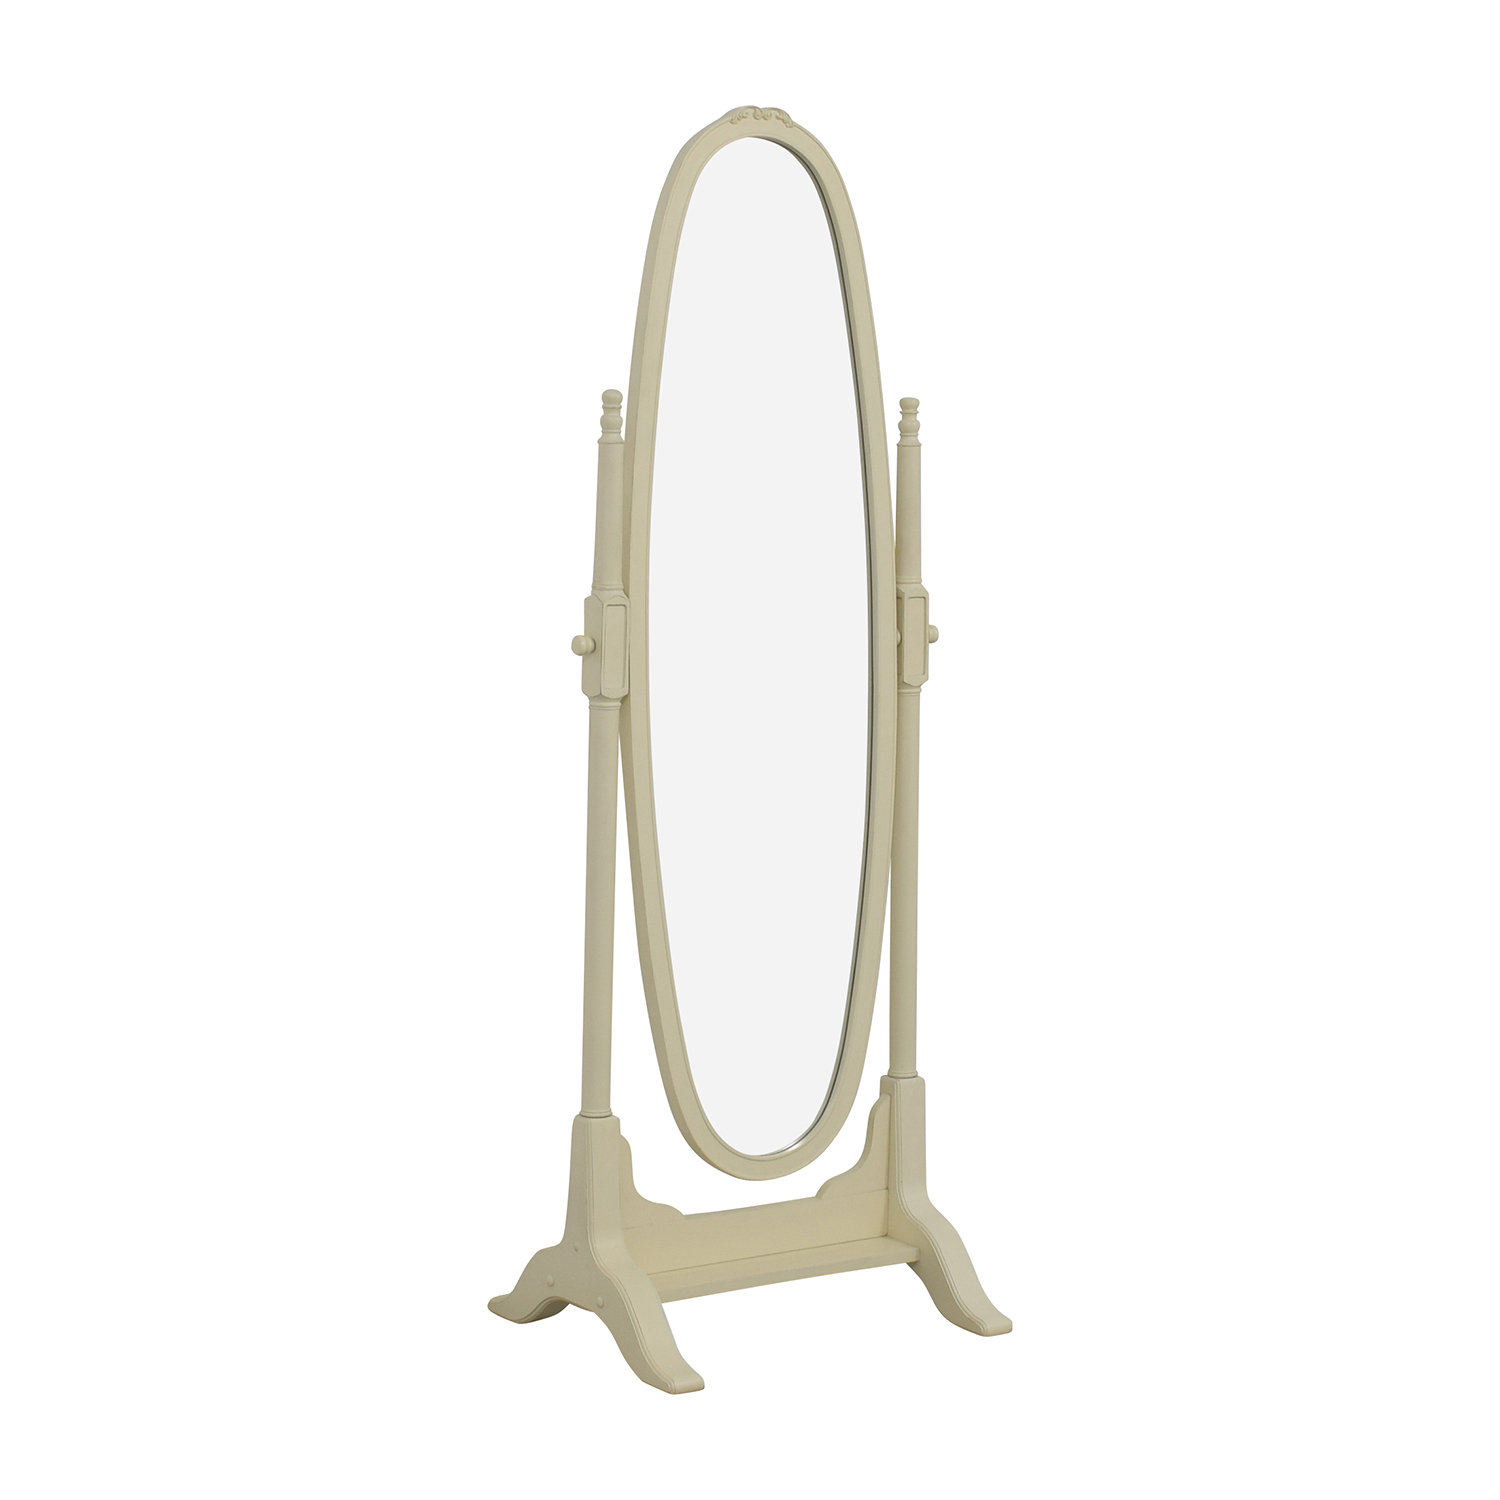 Pottery Barn Vintage White Oval Floor Mirror Pottery Barn